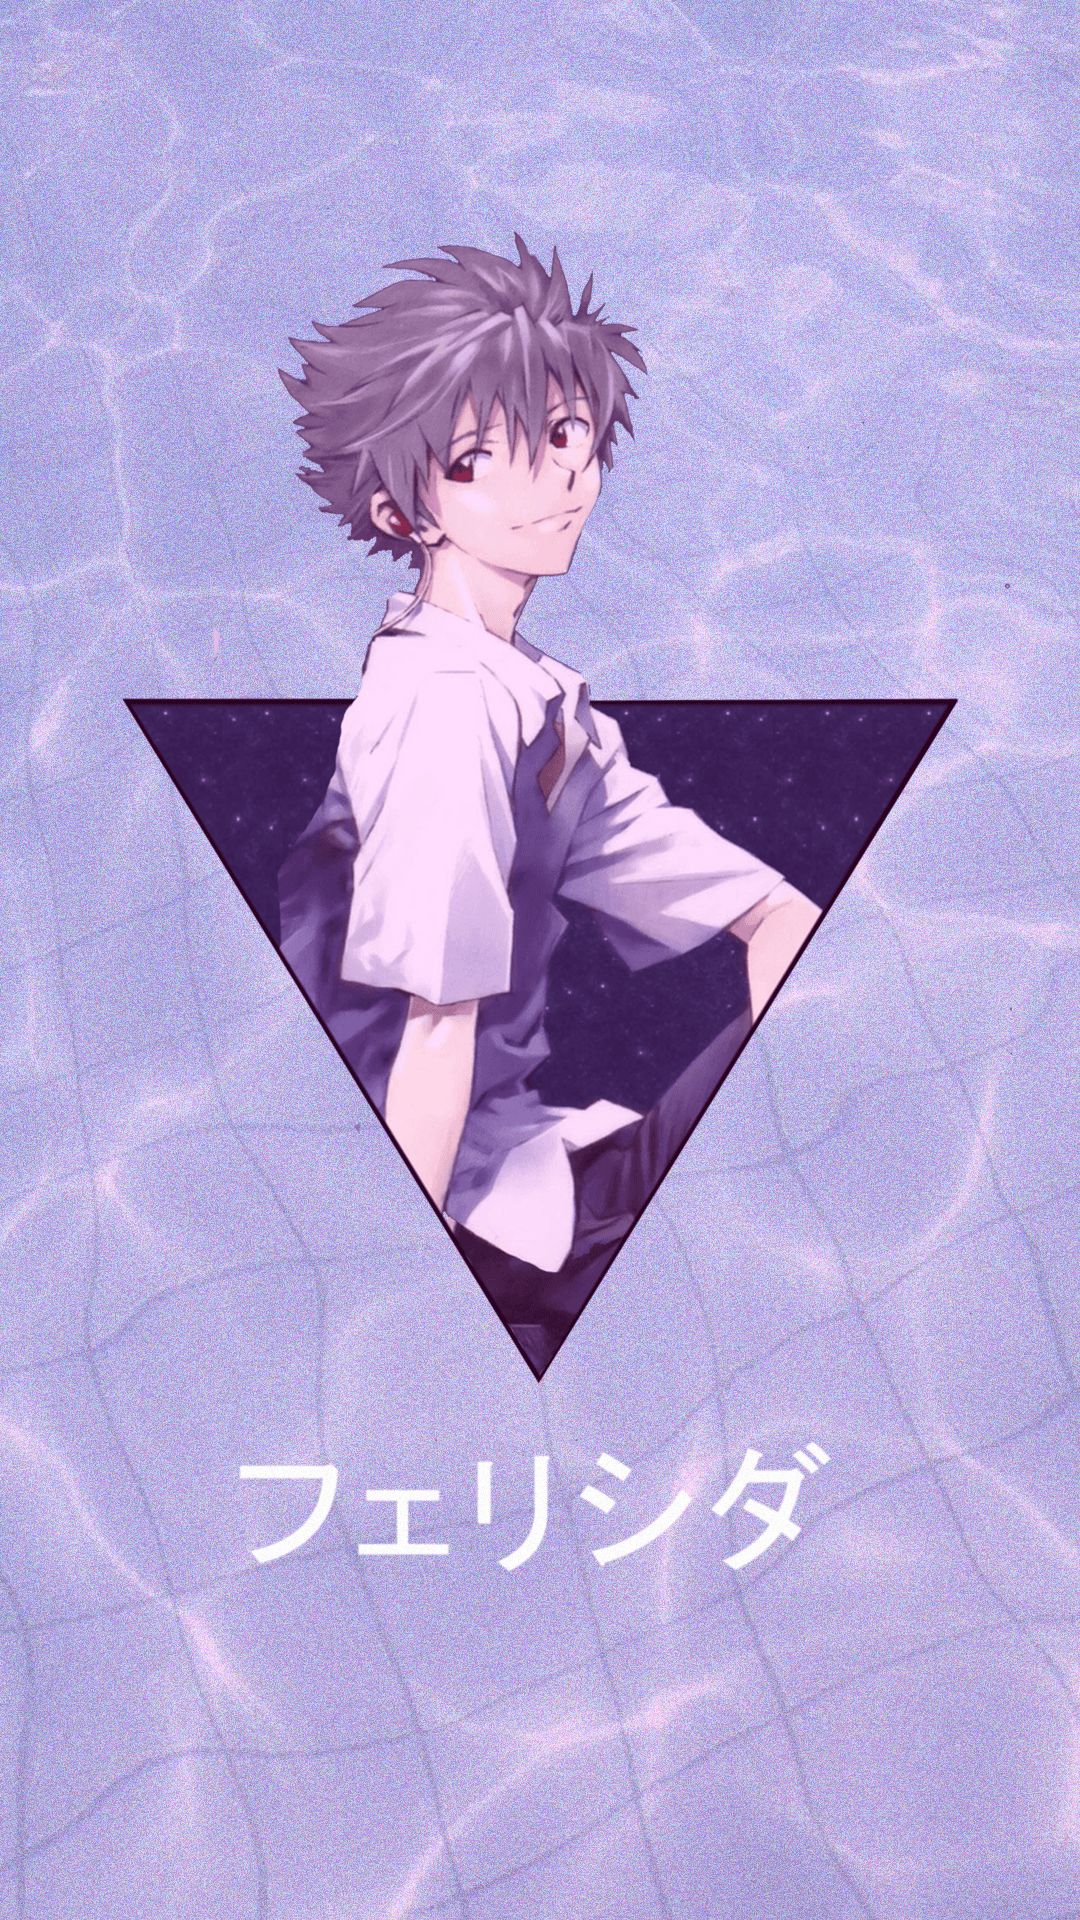 Free Download Aesthetic Anime Phone Wallpapers Top Aesthetic Anime